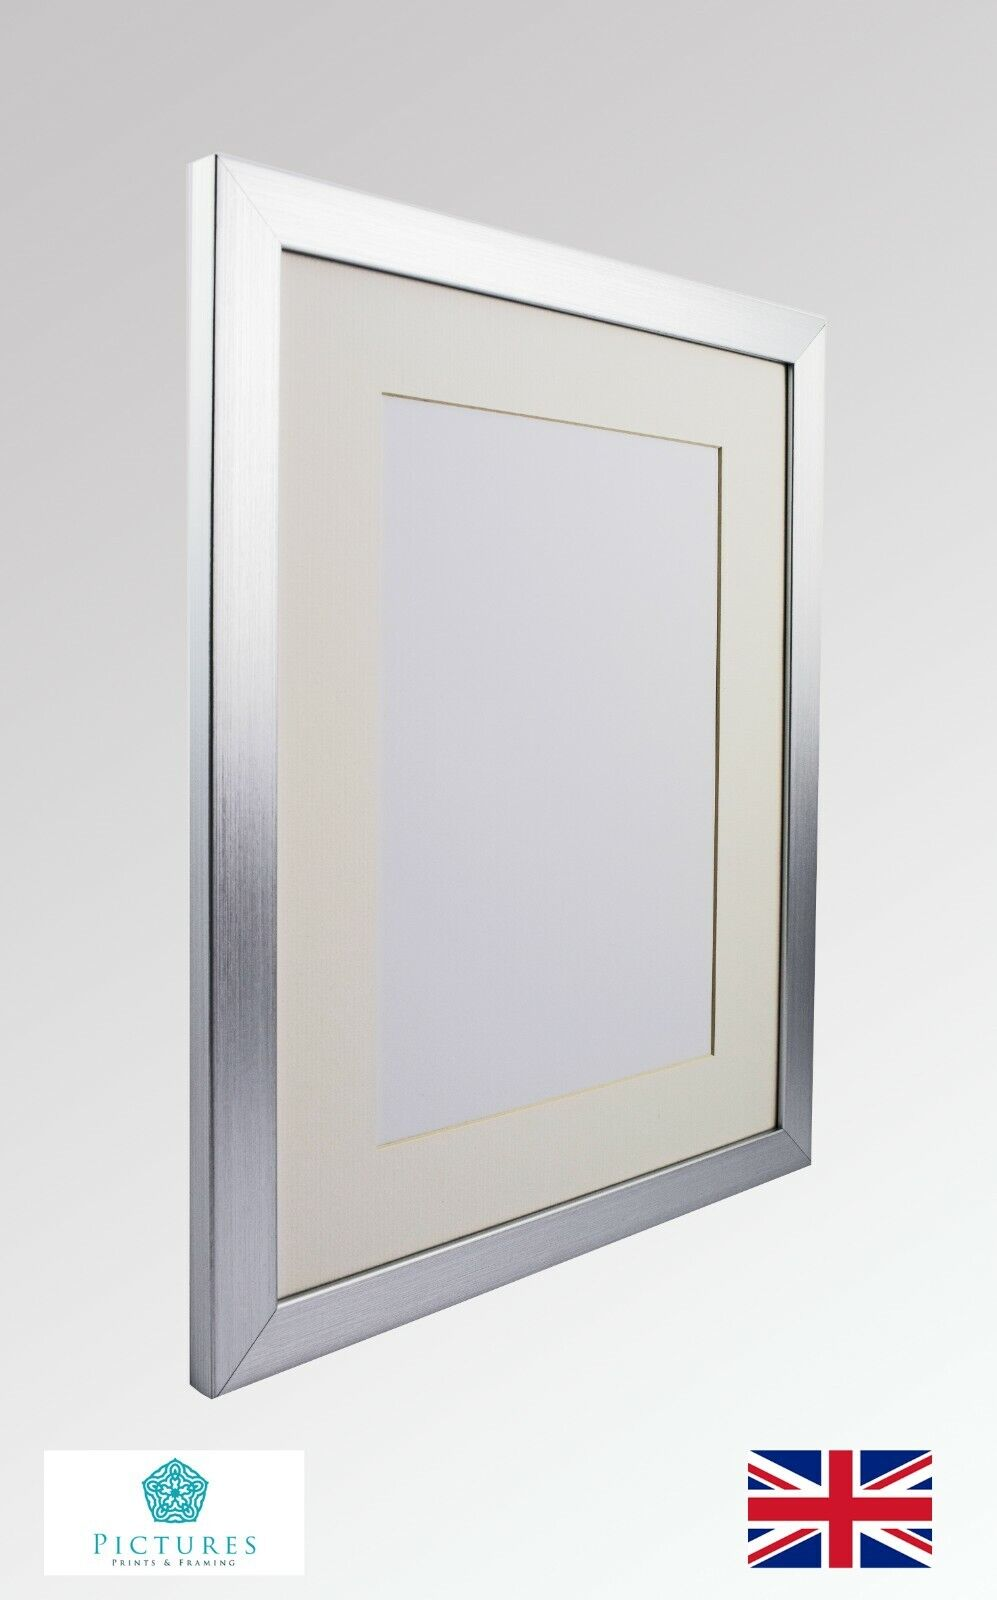 White Wood Picture Frame Made To Display Artwork Measuring 14x17 Inches